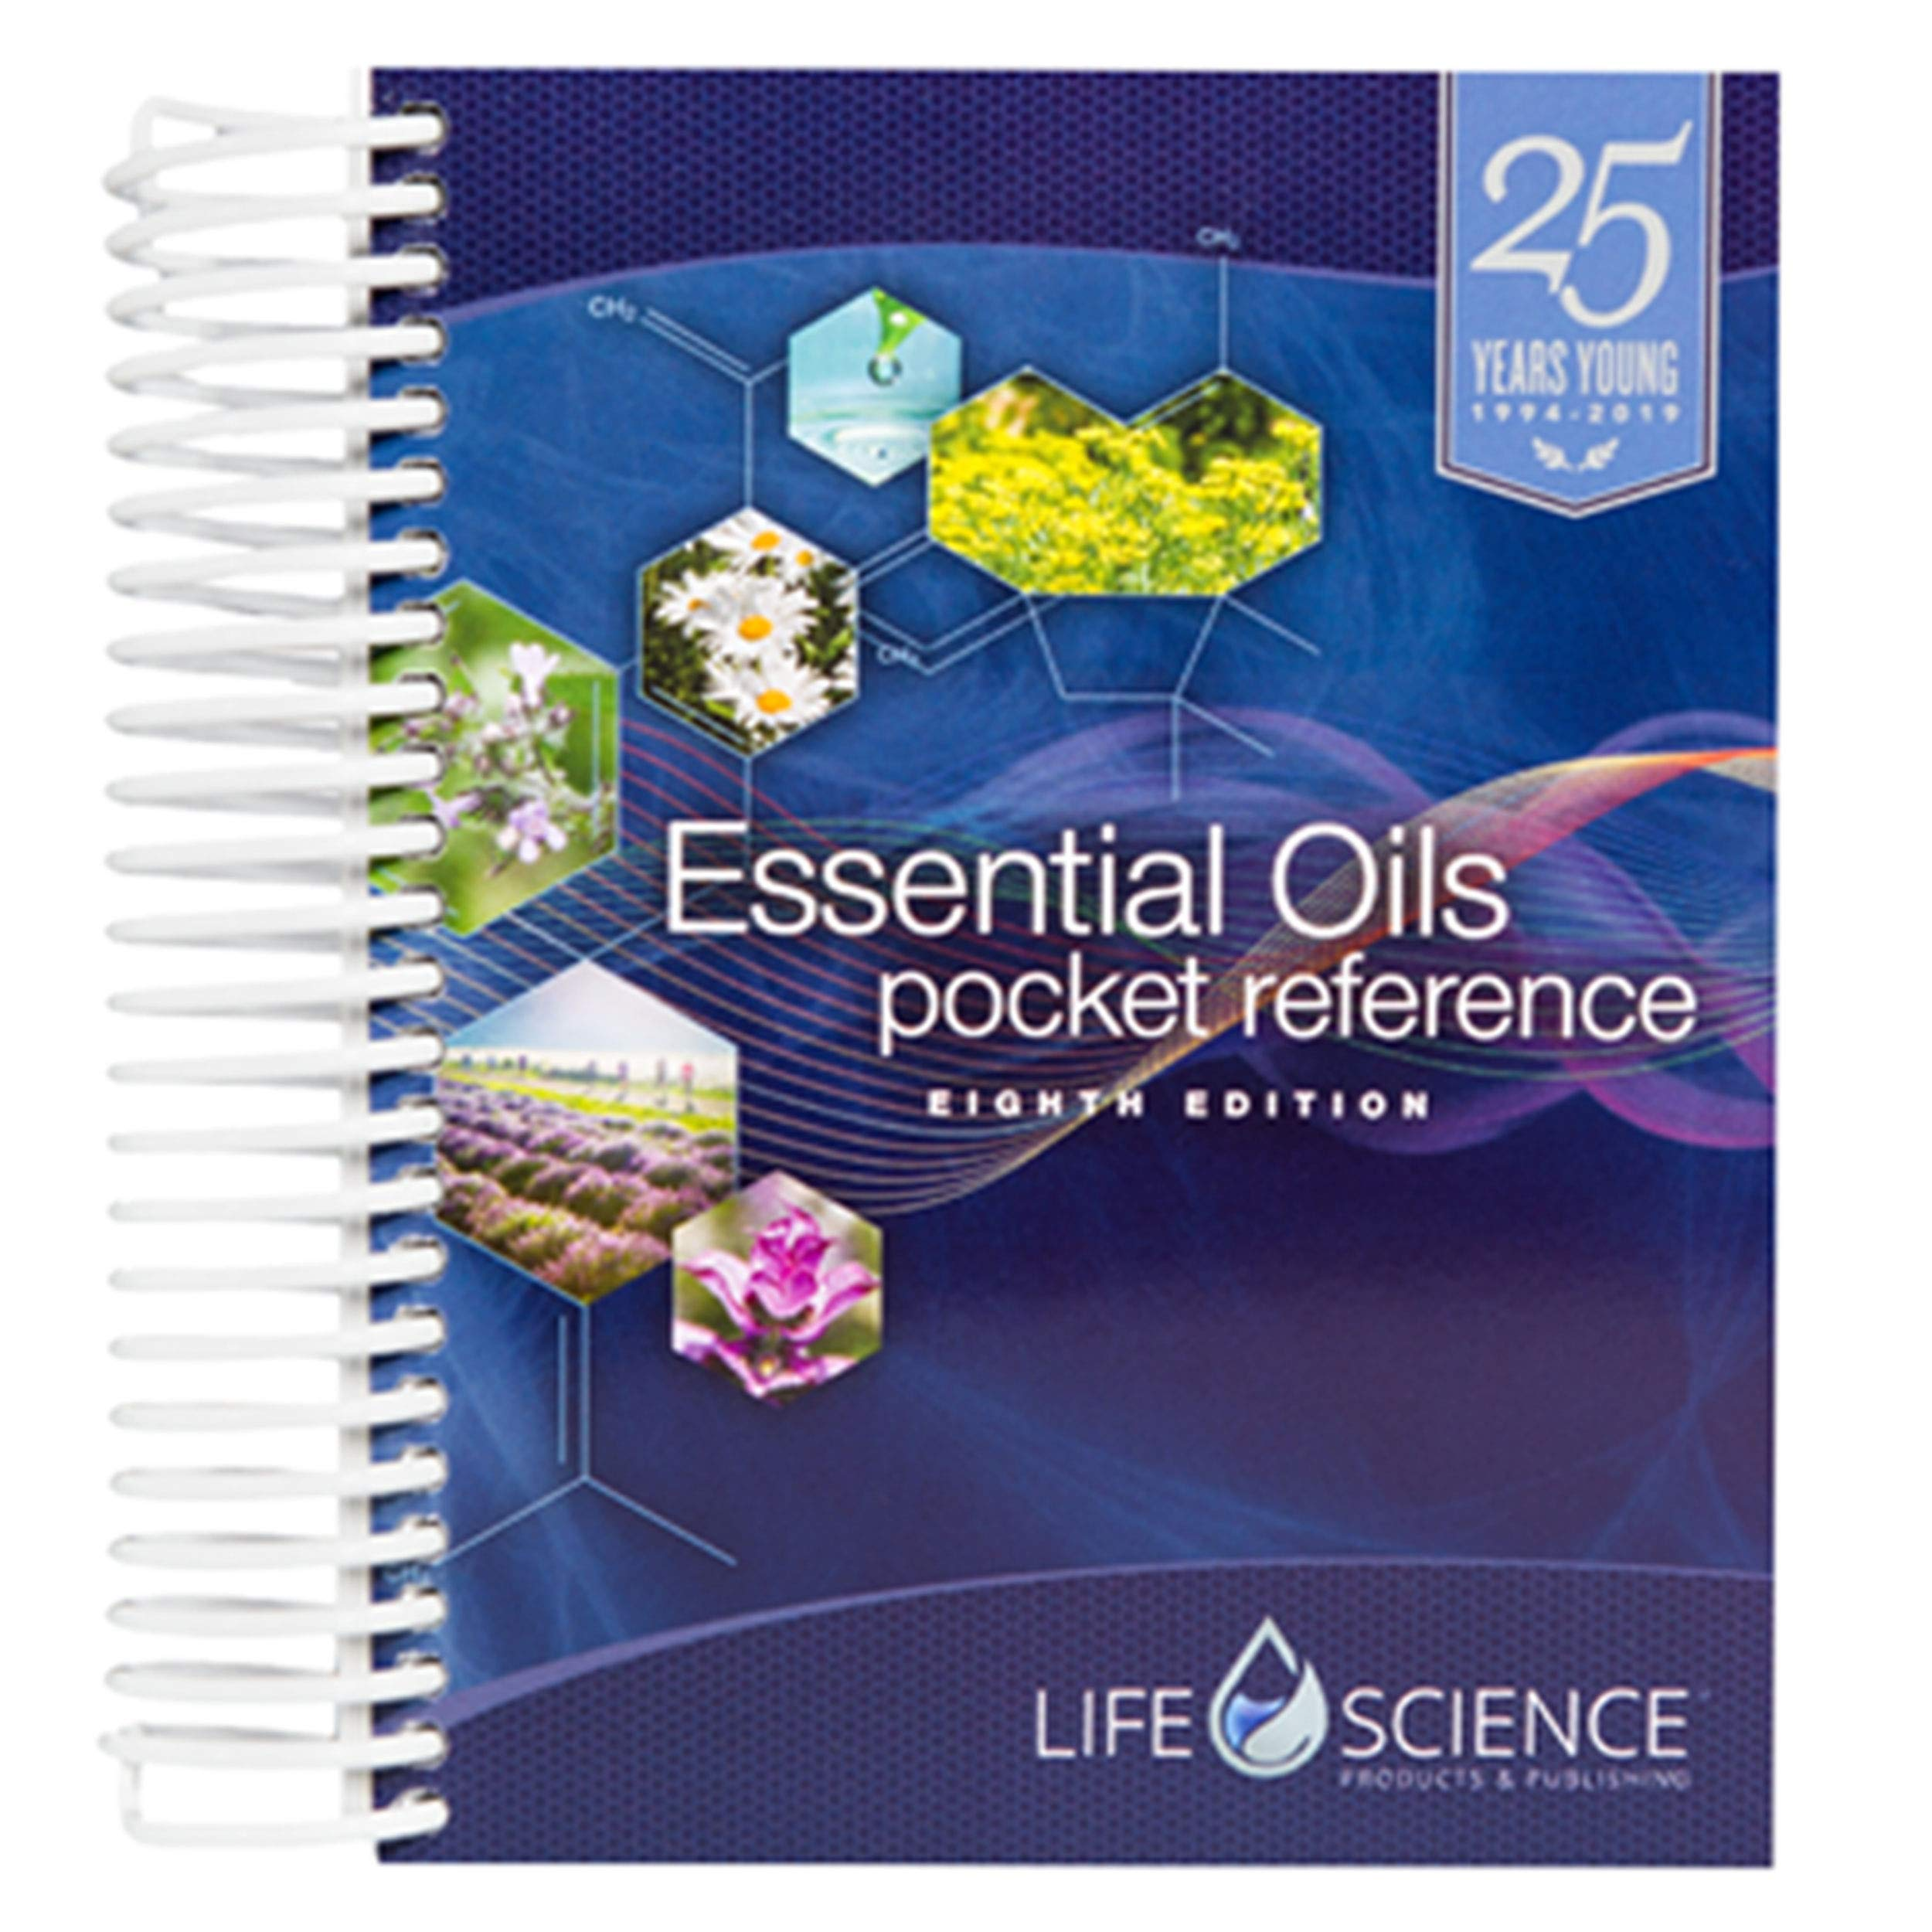 Essential Oils Pocket Reference 8th